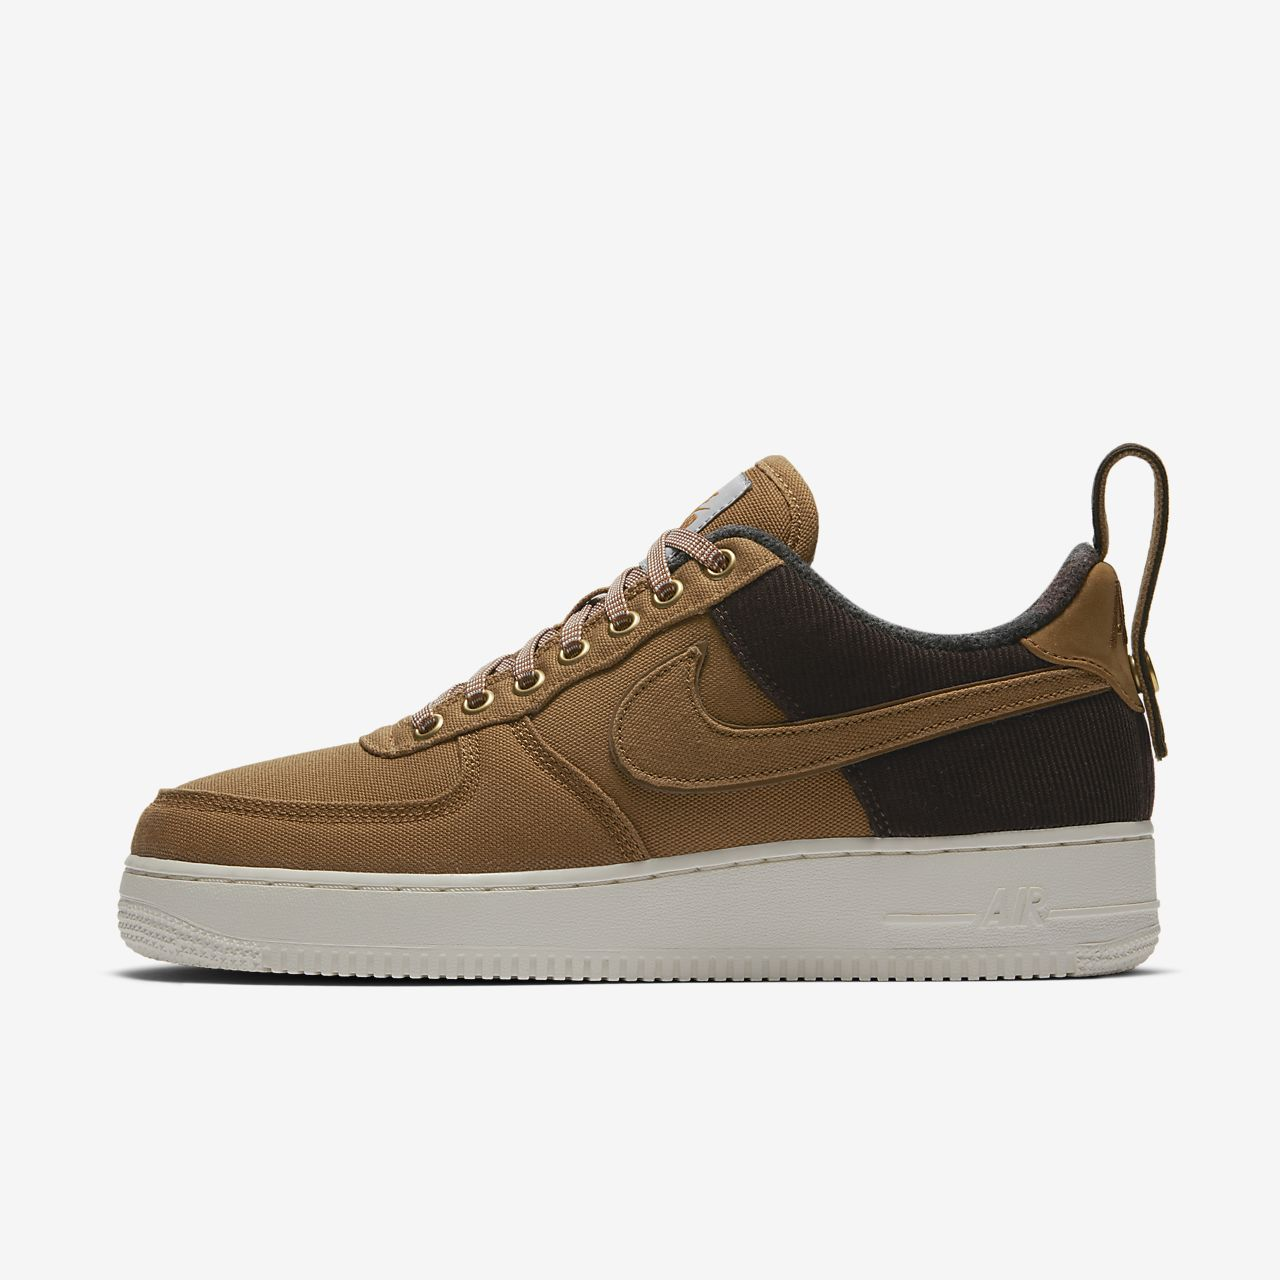 f9bc7c028e5 Nike x Carhartt WIP Air Force 1 Men s Shoe. Nike.com